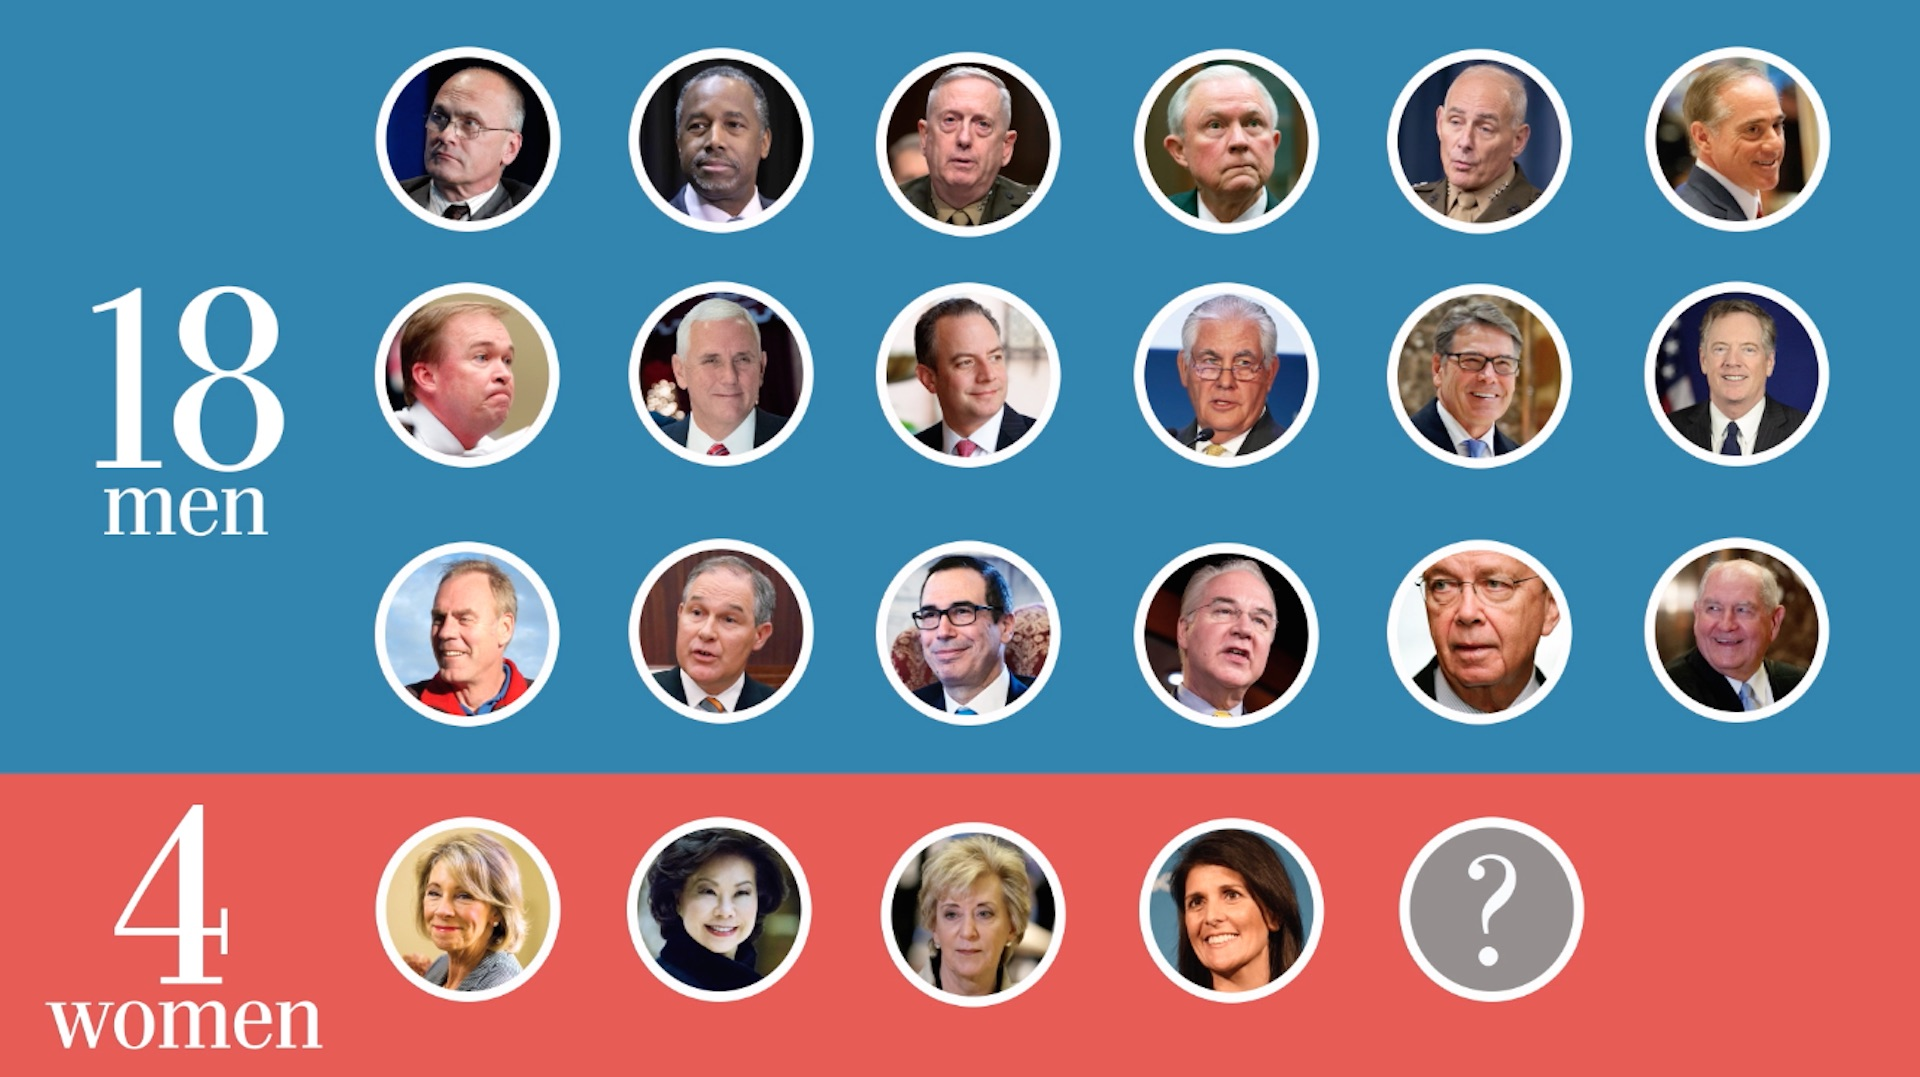 Here's what Donald Trump's Cabinet looks like